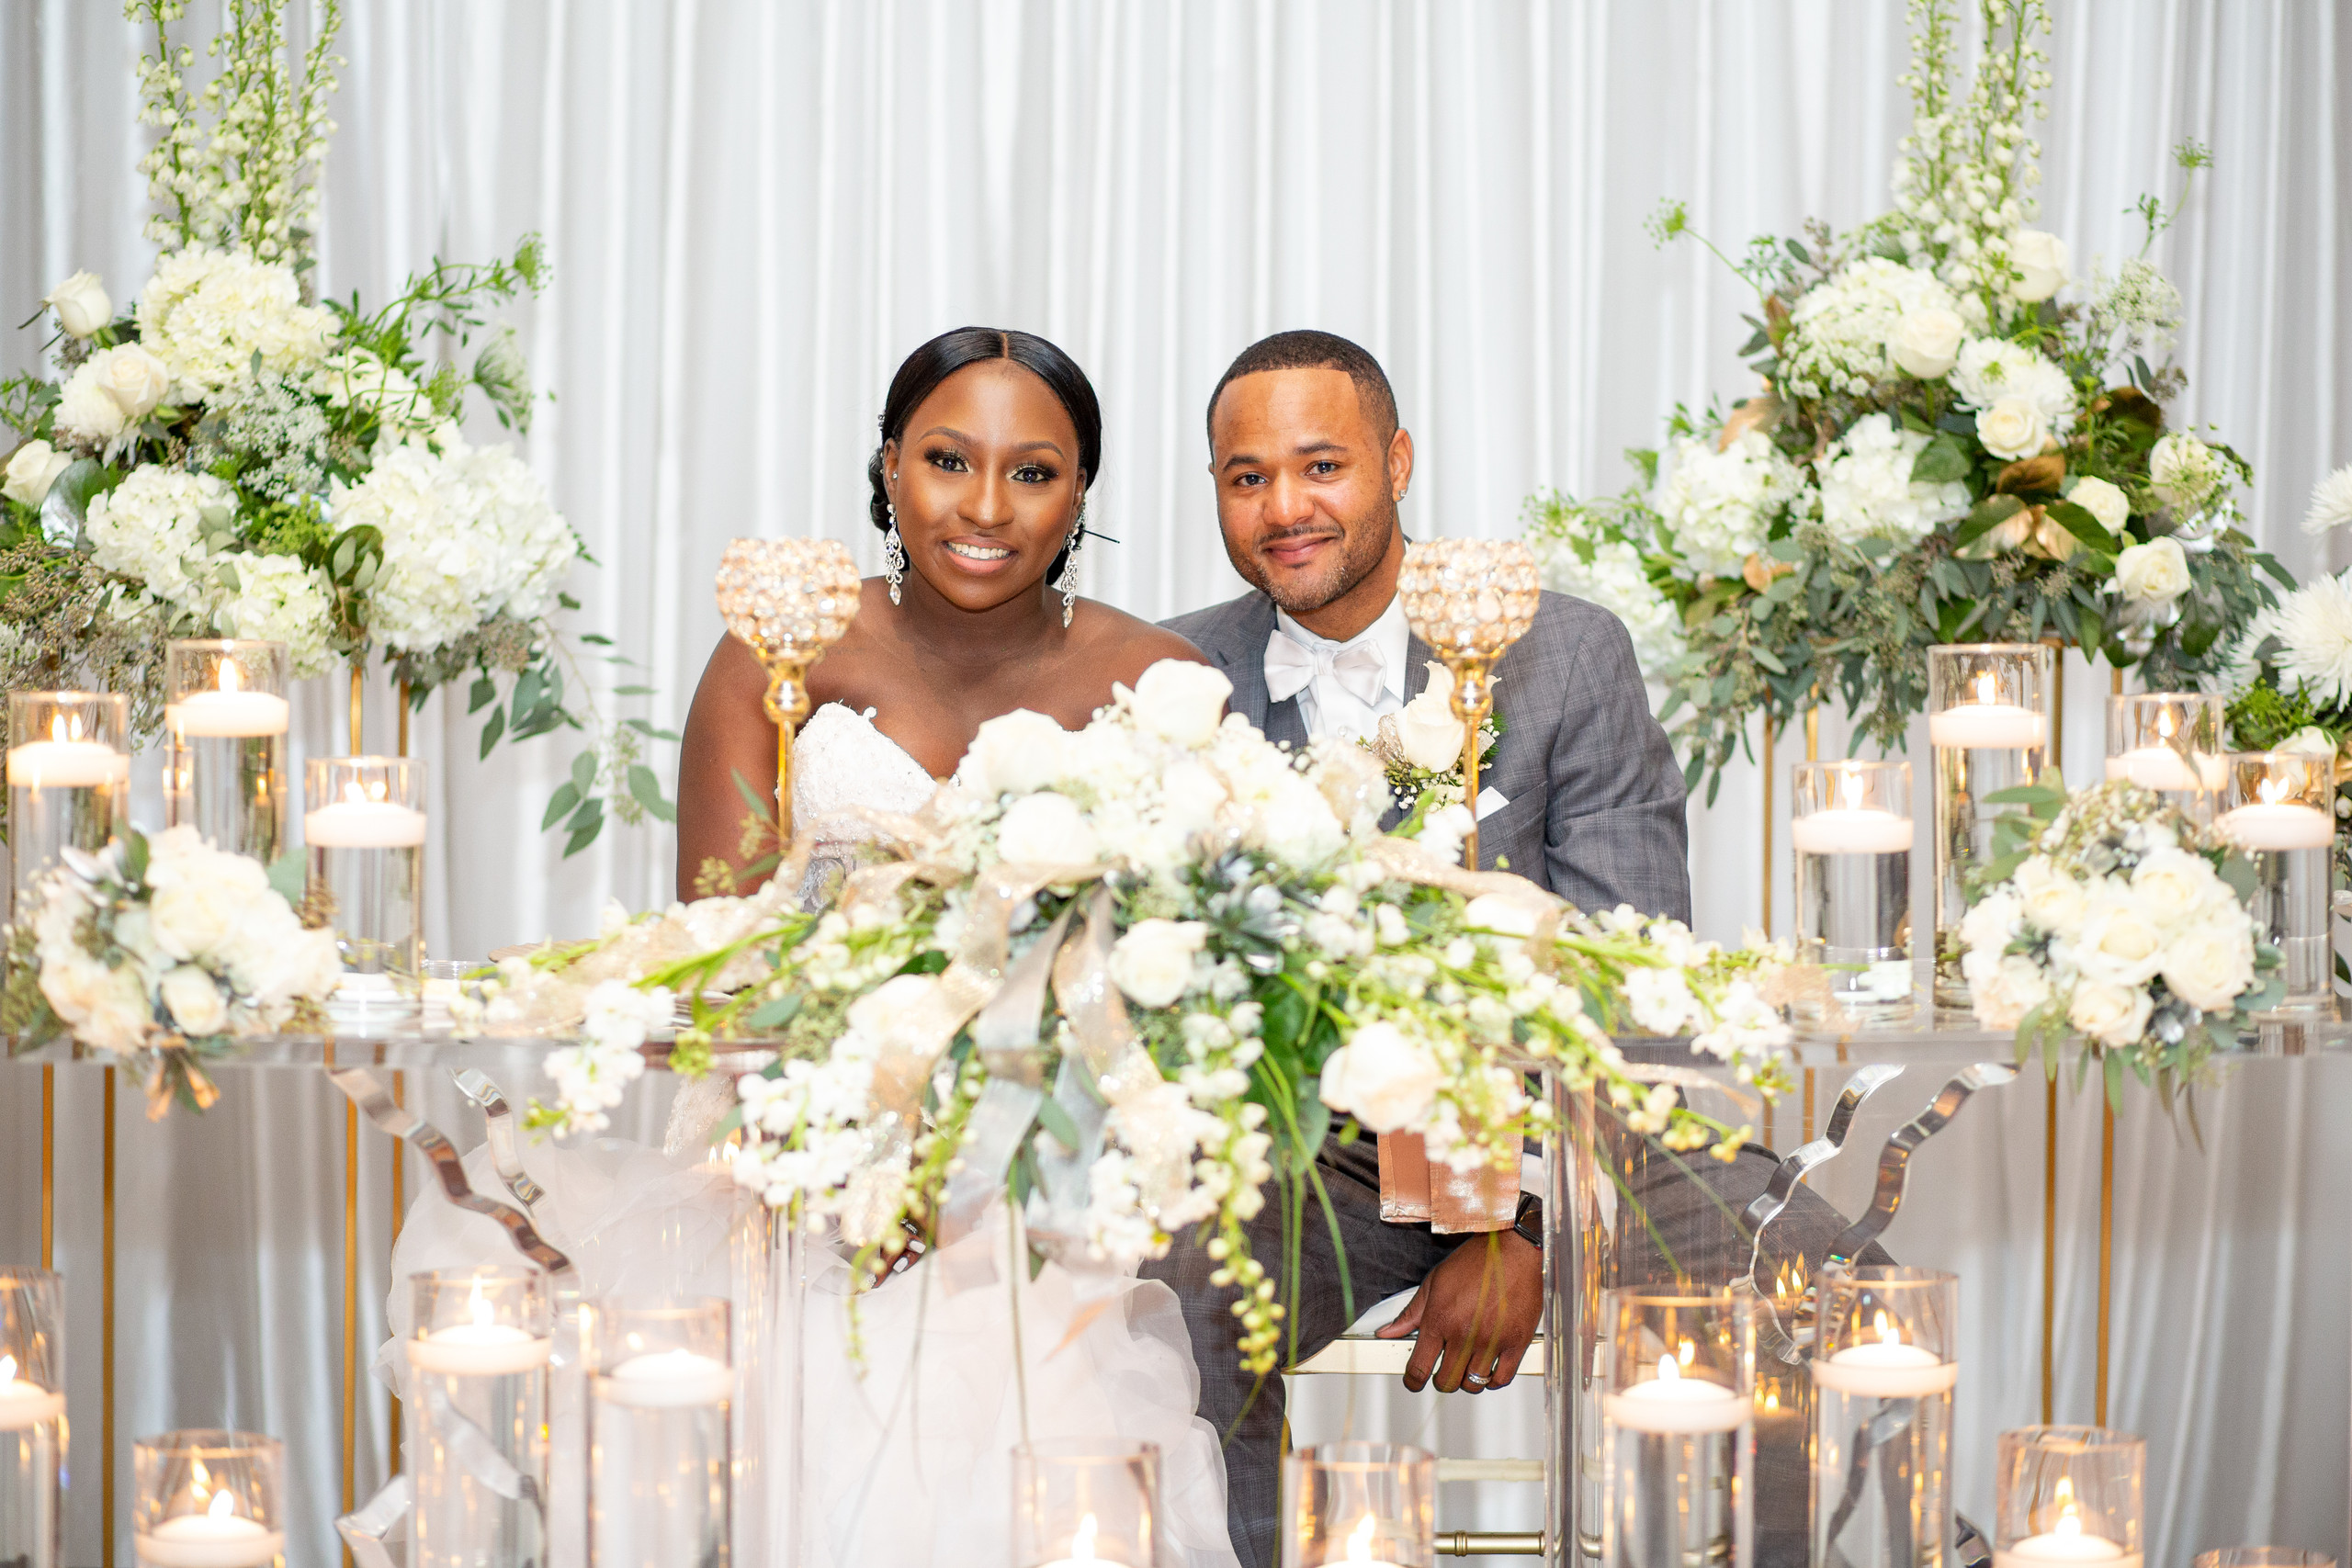 The bride and groom pose at their absolutely stunning couple's table during the wedding reception at the Hilton Main in Norfolk, Virginia.